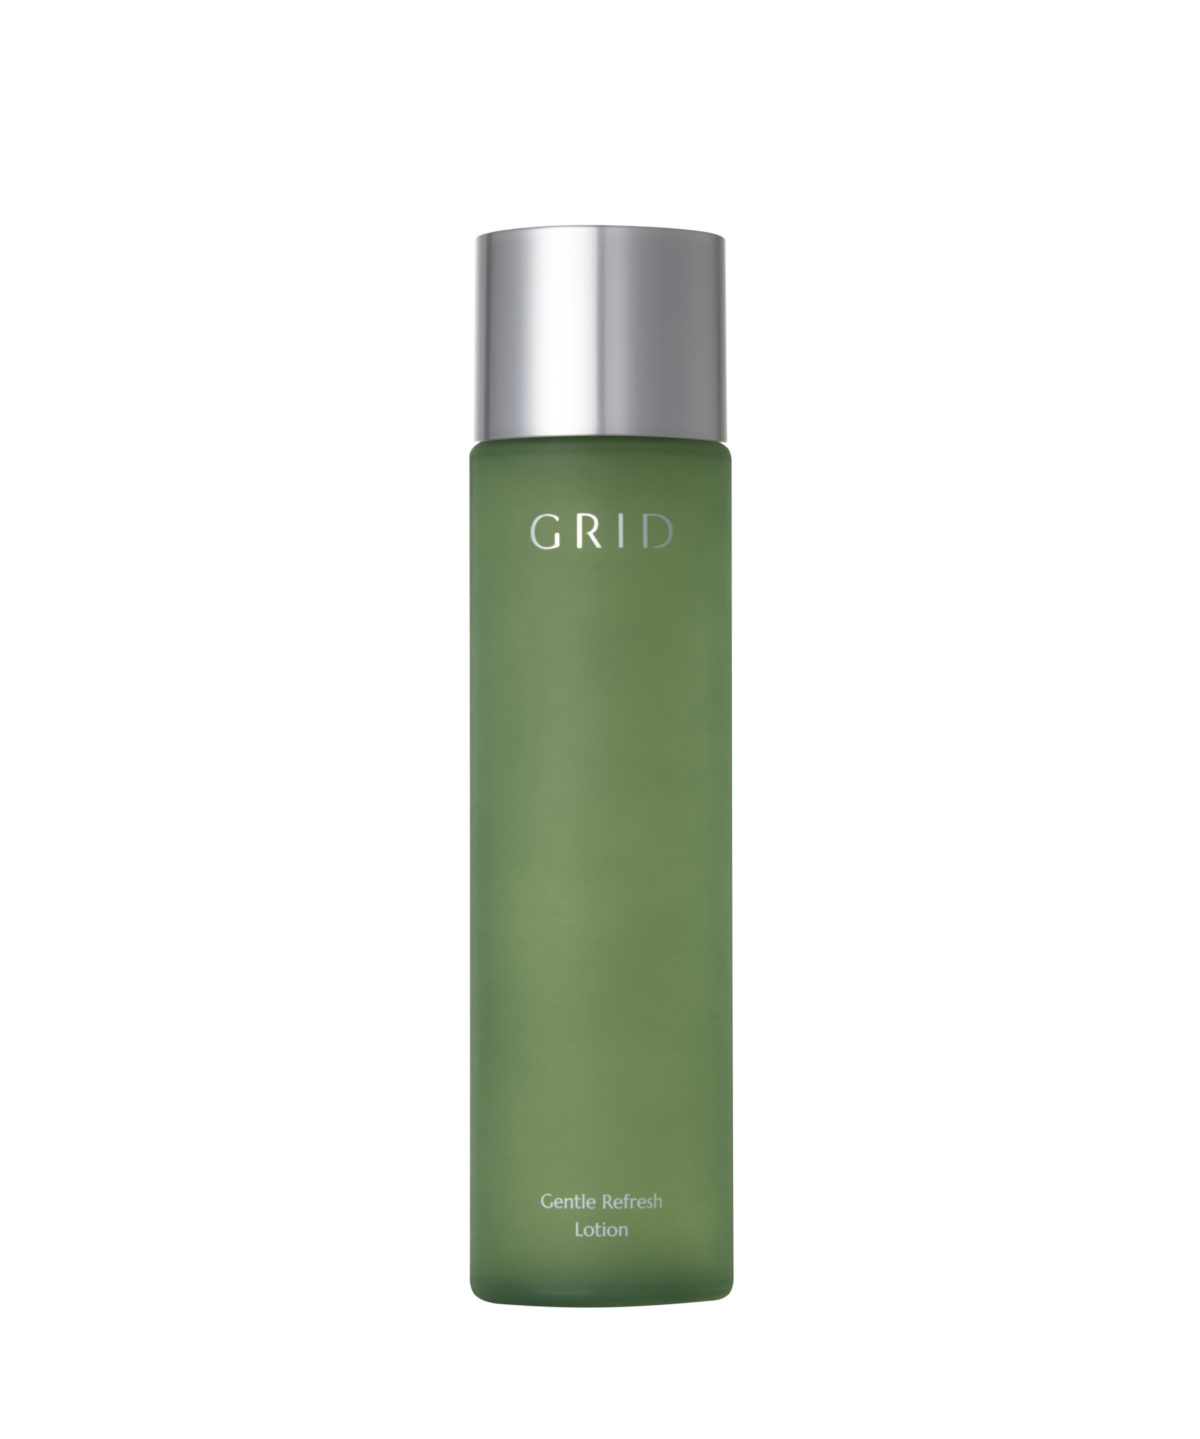 Gentle Refresh Lotion